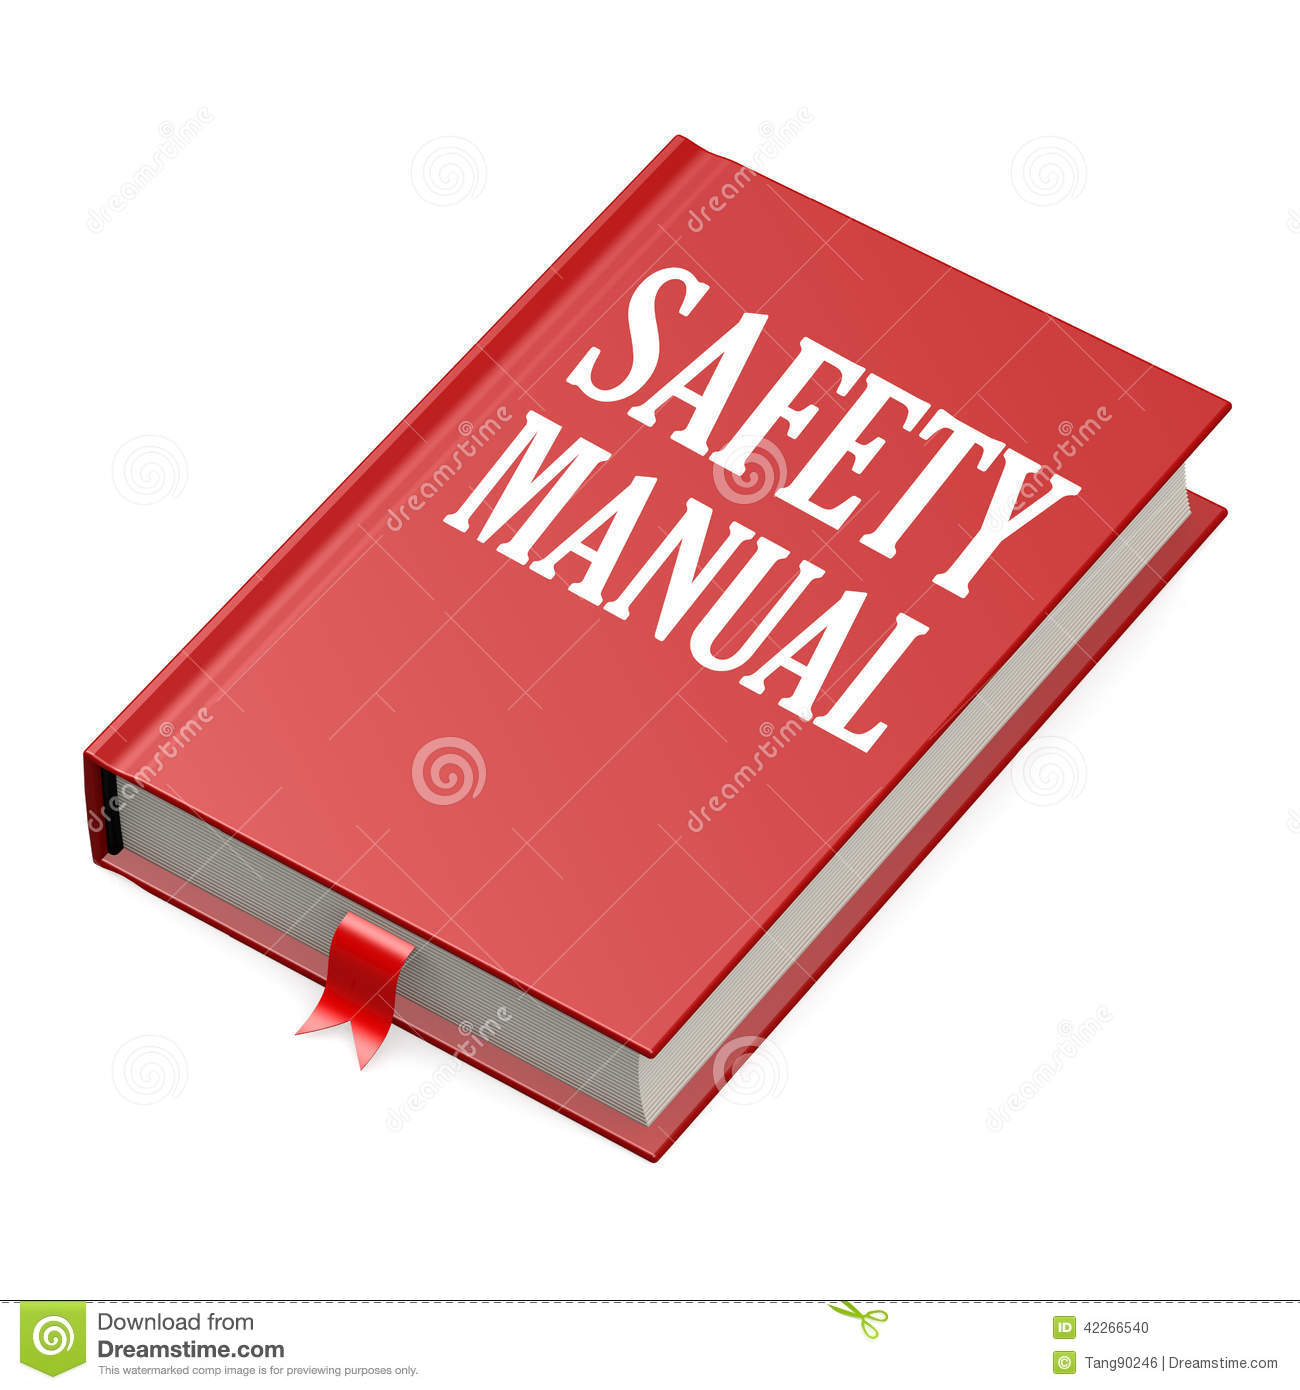 Isolated Red Book Safety Manual  Image Hi Res Rendered Artwork Could Be Used Any Graphic Design 42266540